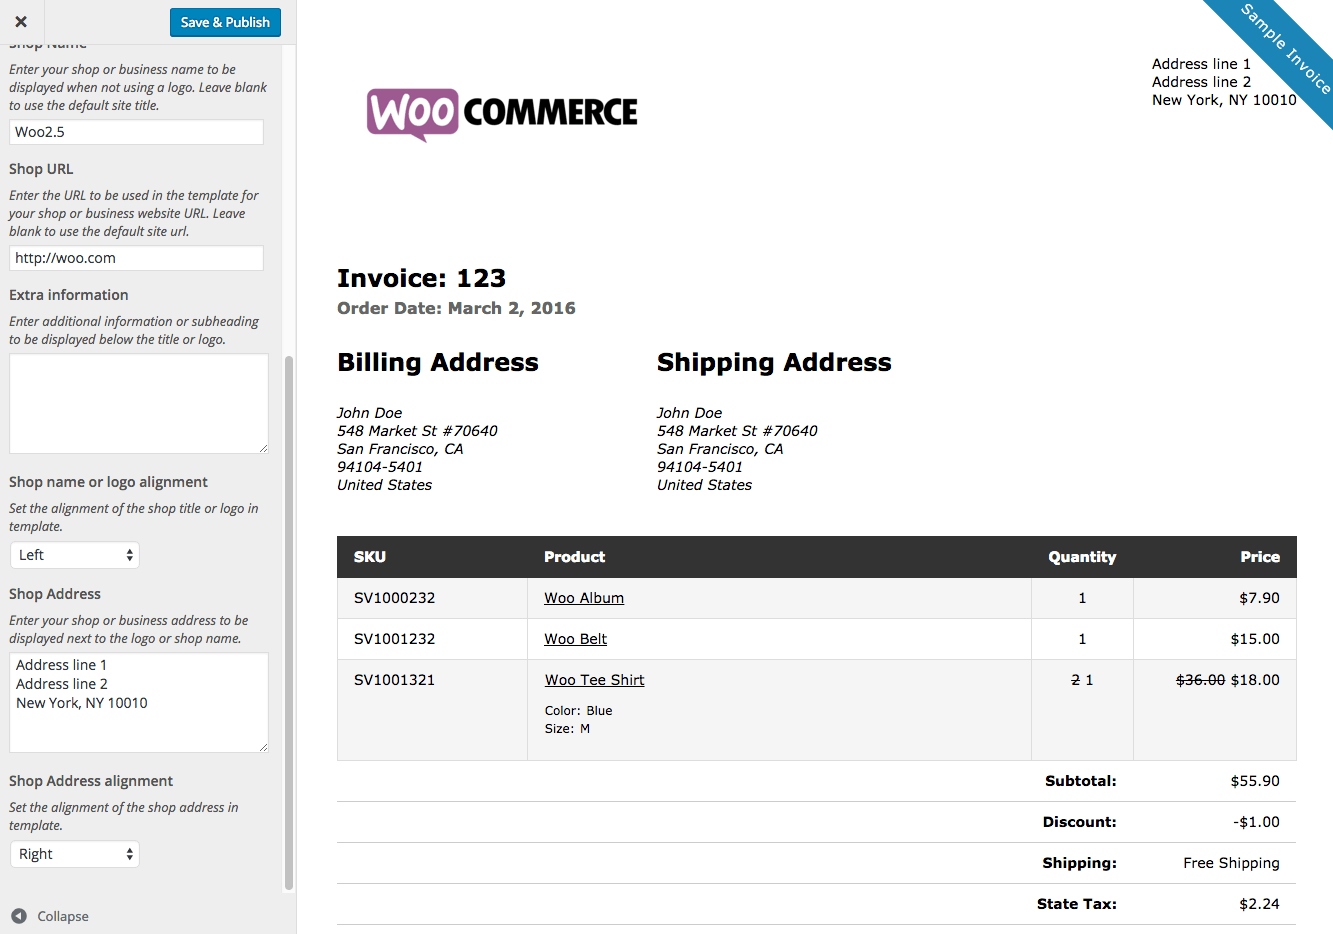 Maidofhonortoastus  Gorgeous Woocommerce Print Invoices Amp Packing Lists  Woocommerce Docs With Magnificent Woocommerce Print Invoices  Packing Lists Customizer With Enchanting Best Invoice Software For Small Business Also Invoice Bill To In Addition Professional Invoice Template Word And How To Find Invoice Price Of A New Car As Well As Creating An Invoice In Excel Additionally Automobile Invoice Prices From Docswoocommercecom With Maidofhonortoastus  Magnificent Woocommerce Print Invoices Amp Packing Lists  Woocommerce Docs With Enchanting Woocommerce Print Invoices  Packing Lists Customizer And Gorgeous Best Invoice Software For Small Business Also Invoice Bill To In Addition Professional Invoice Template Word From Docswoocommercecom